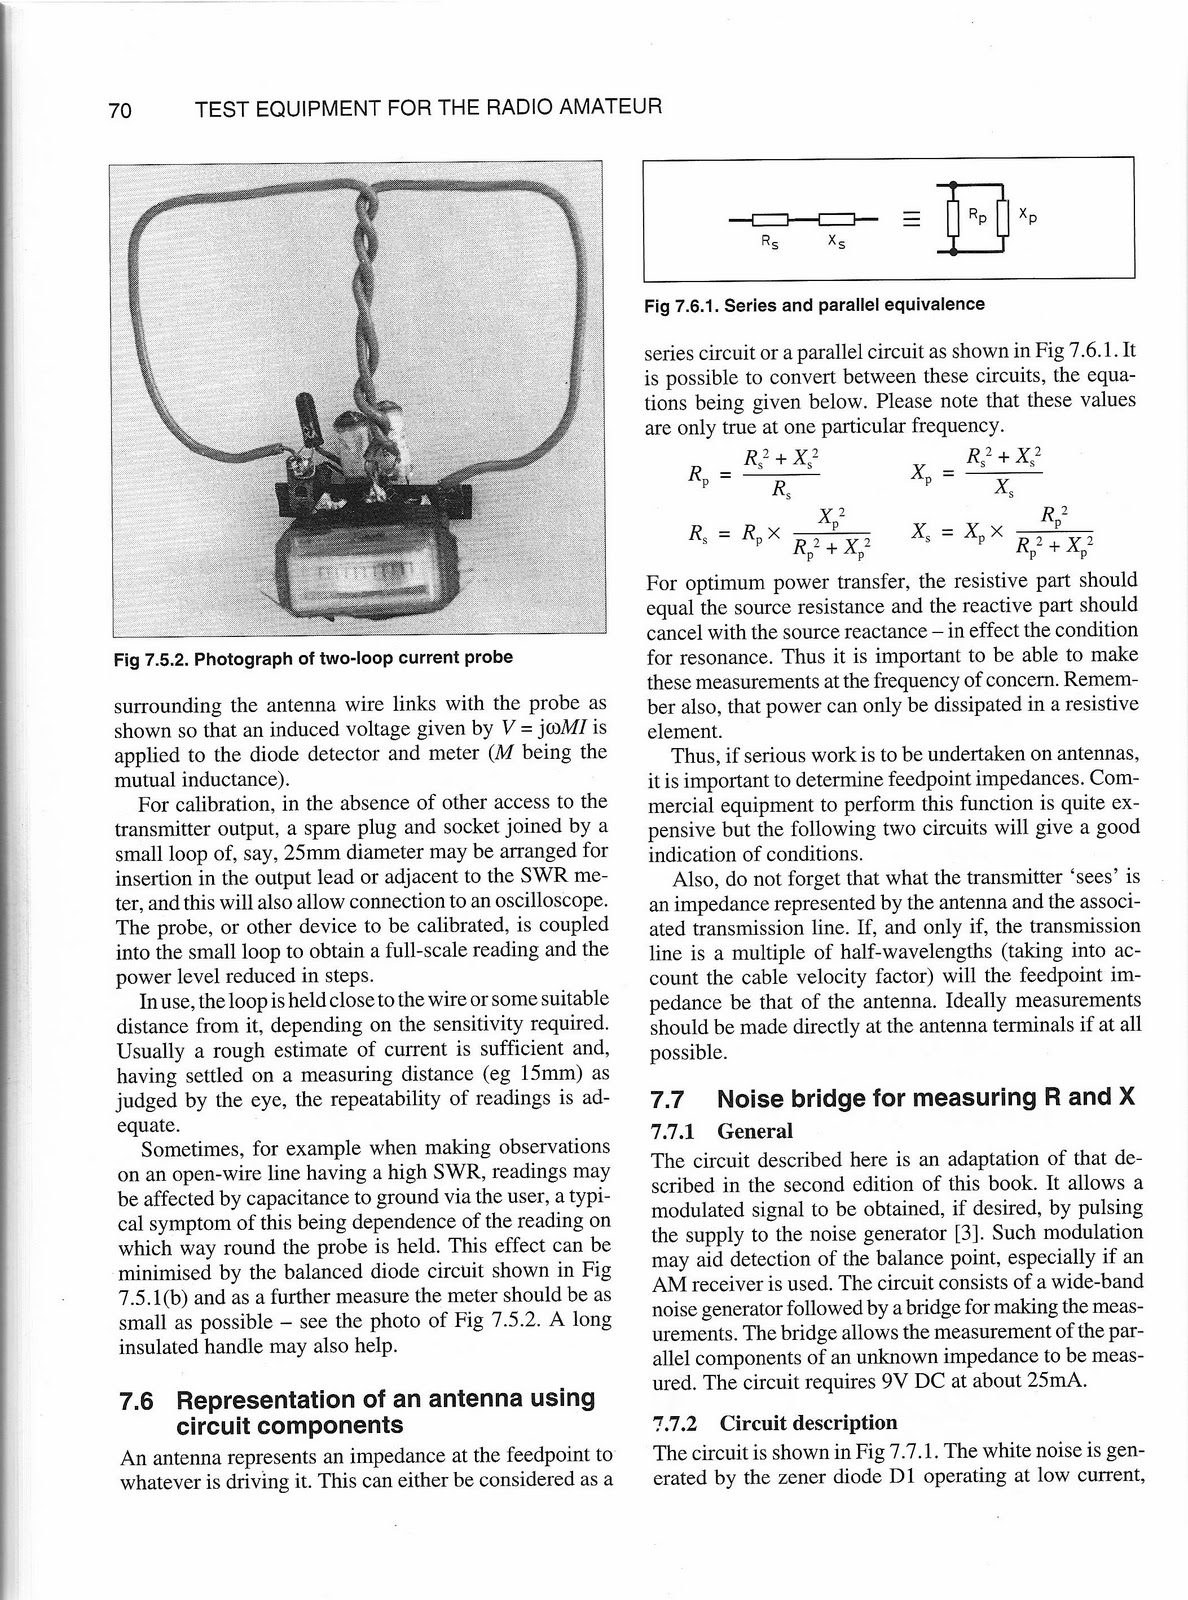 Another Crystal Radio Set With Different Method Of Coil Wnding Wiring Diagram Simple Receiver Please Refer To Picture 7 Build Instructions As I Do Have Attached A Noise Bridge From Test Equipment By Clive Smith G4fzh Using Easily Obtained Components Pcb Layout